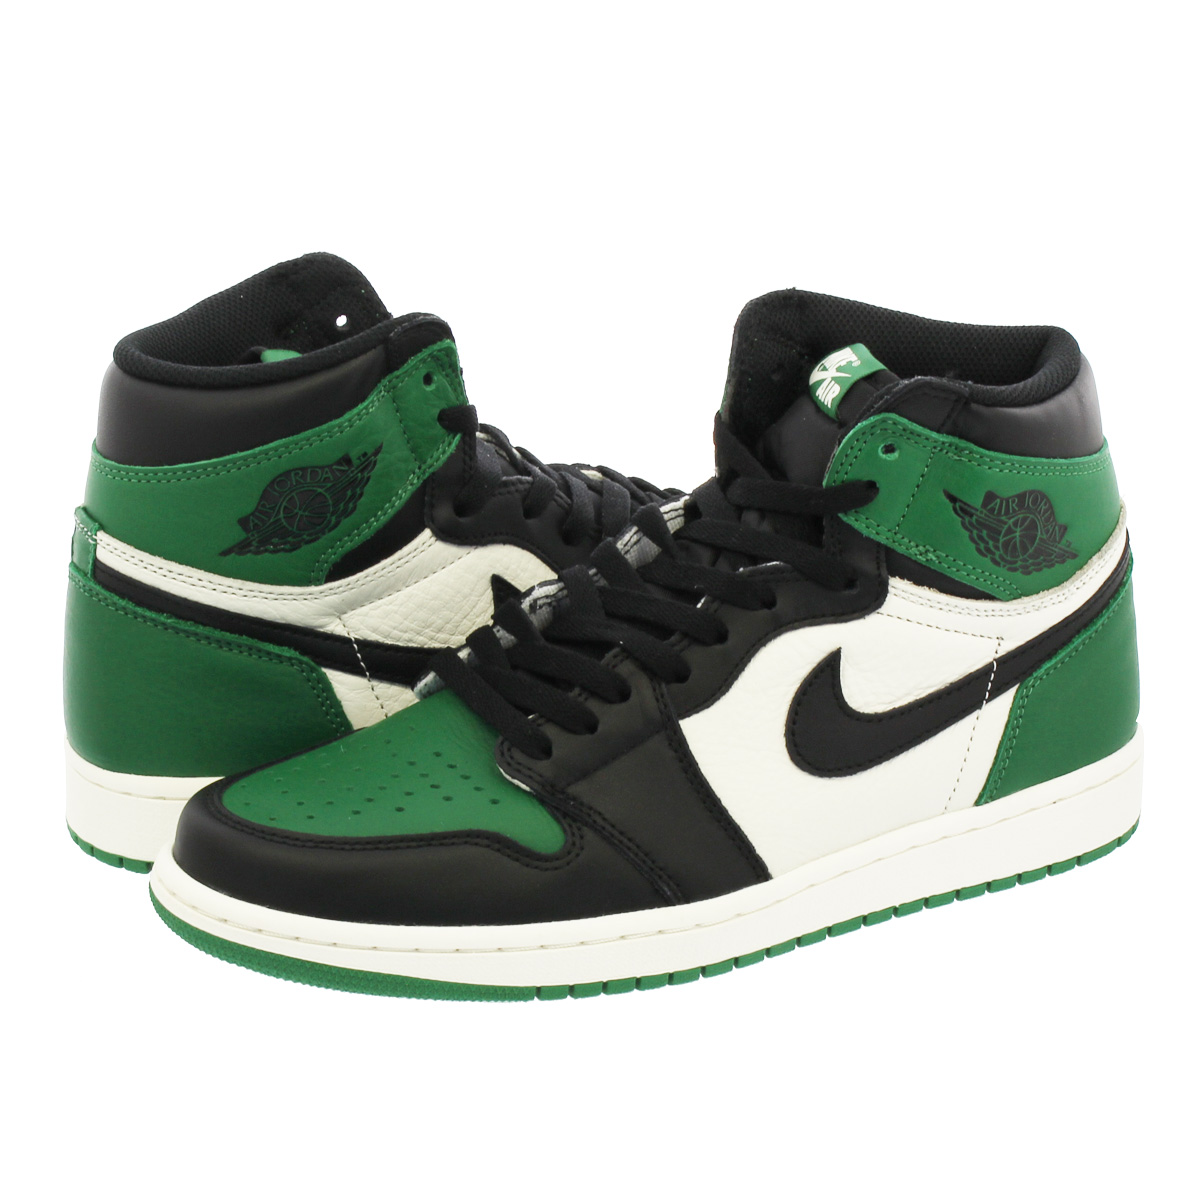 buy popular 14676 fa528 NIKE AIR JORDAN 1 RETRO HIGH OG Nike Air Jordan 1 nostalgic high OG PINE  GREEN/BLACK/SAIL 555,088-302